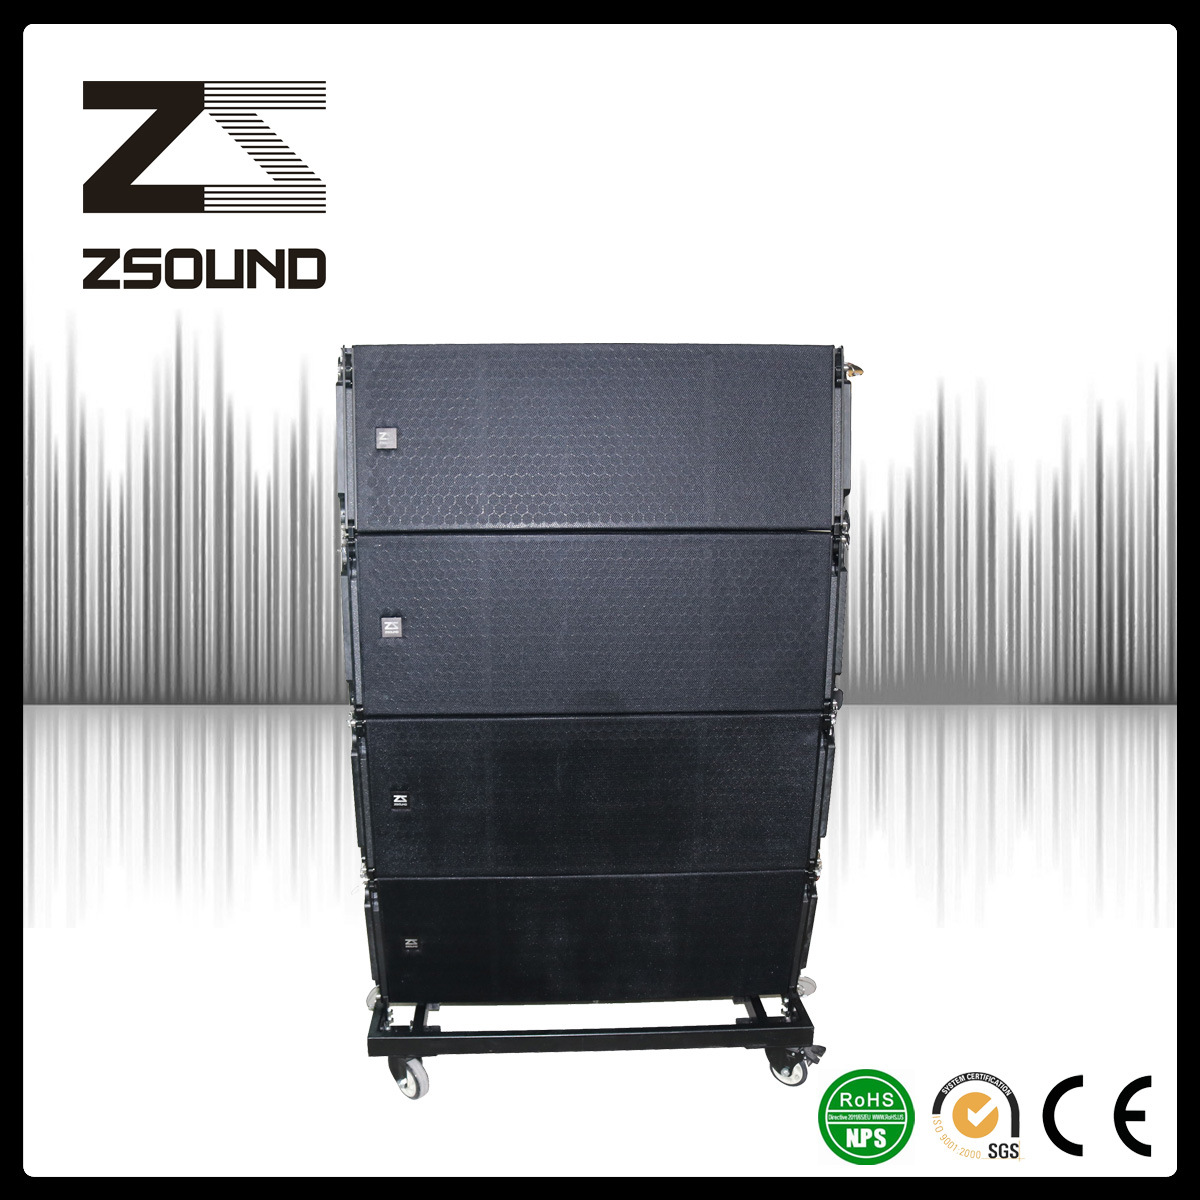 Zsound VCL PRO Sound Opera House Line Array Loudspeaker